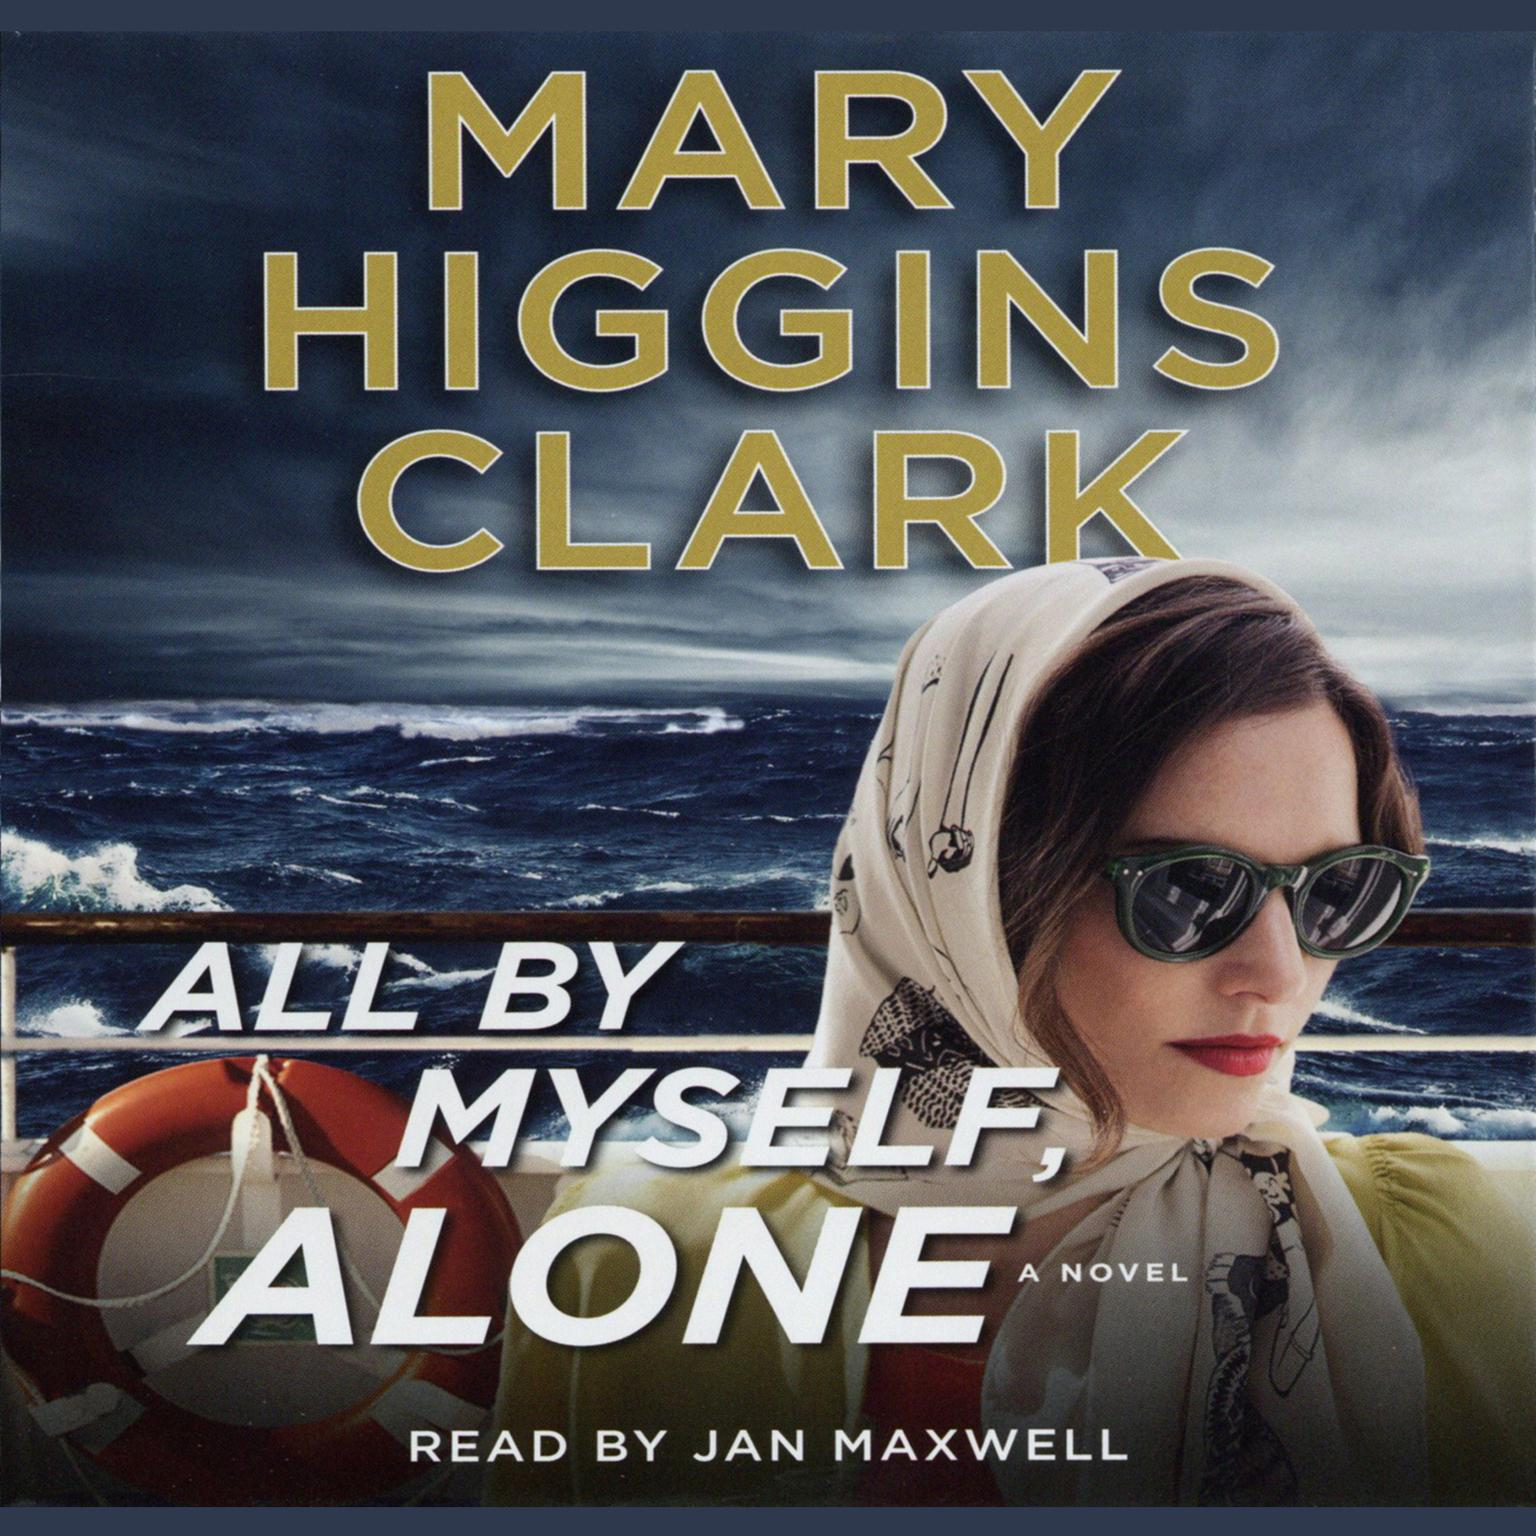 Printable All By Myself, Alone: A Novel Audiobook Cover Art